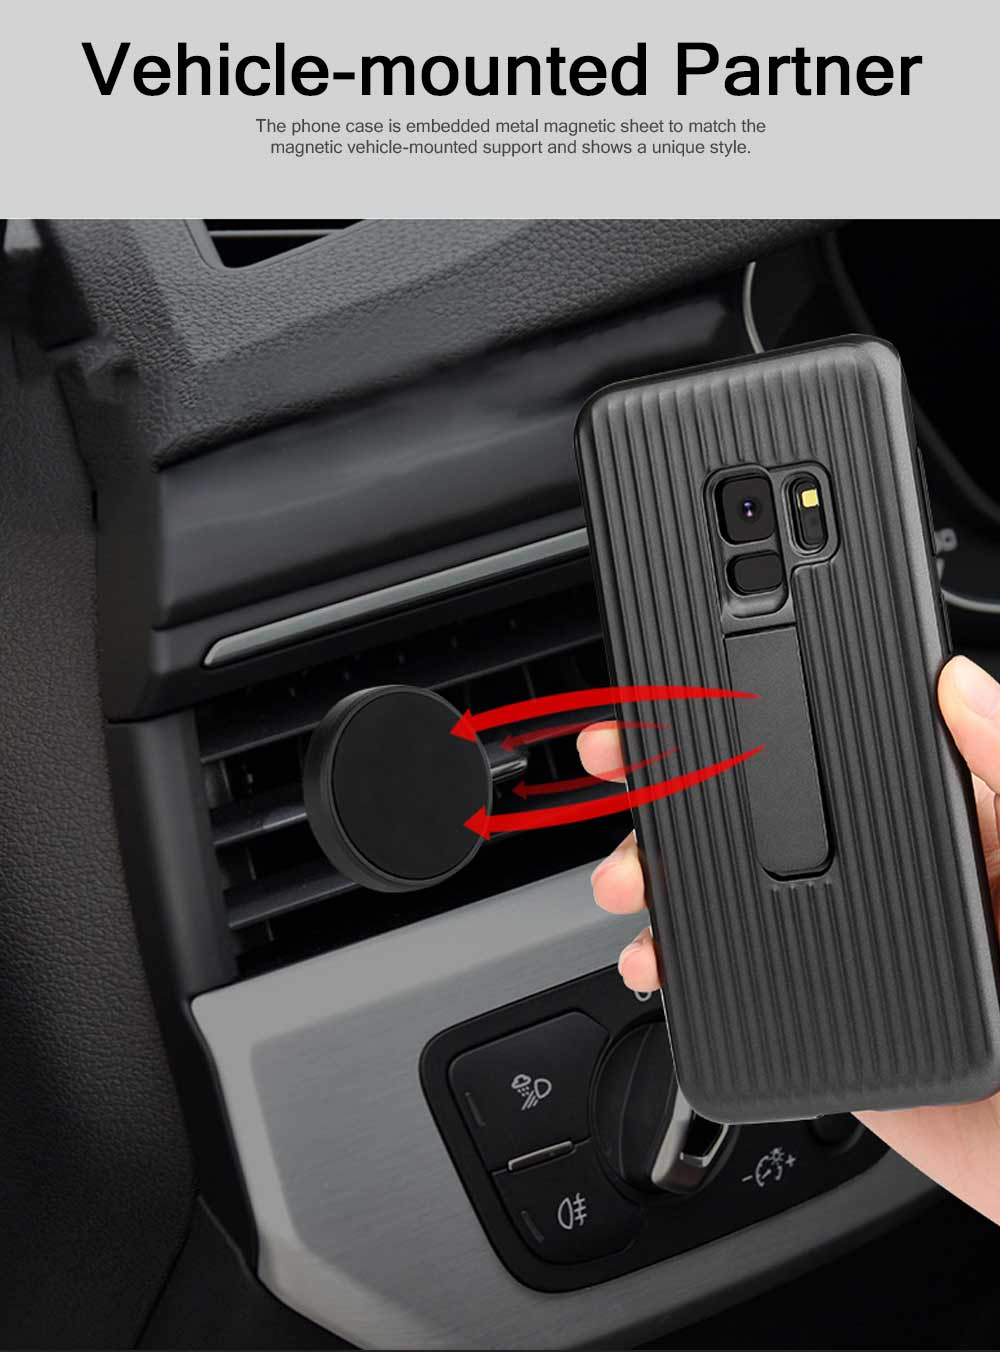 New-style Samsung Phone Case for Galaxy S9 & S9 Plus Vehicle-Mounted Protective Case Vertical Support Phone Case 7